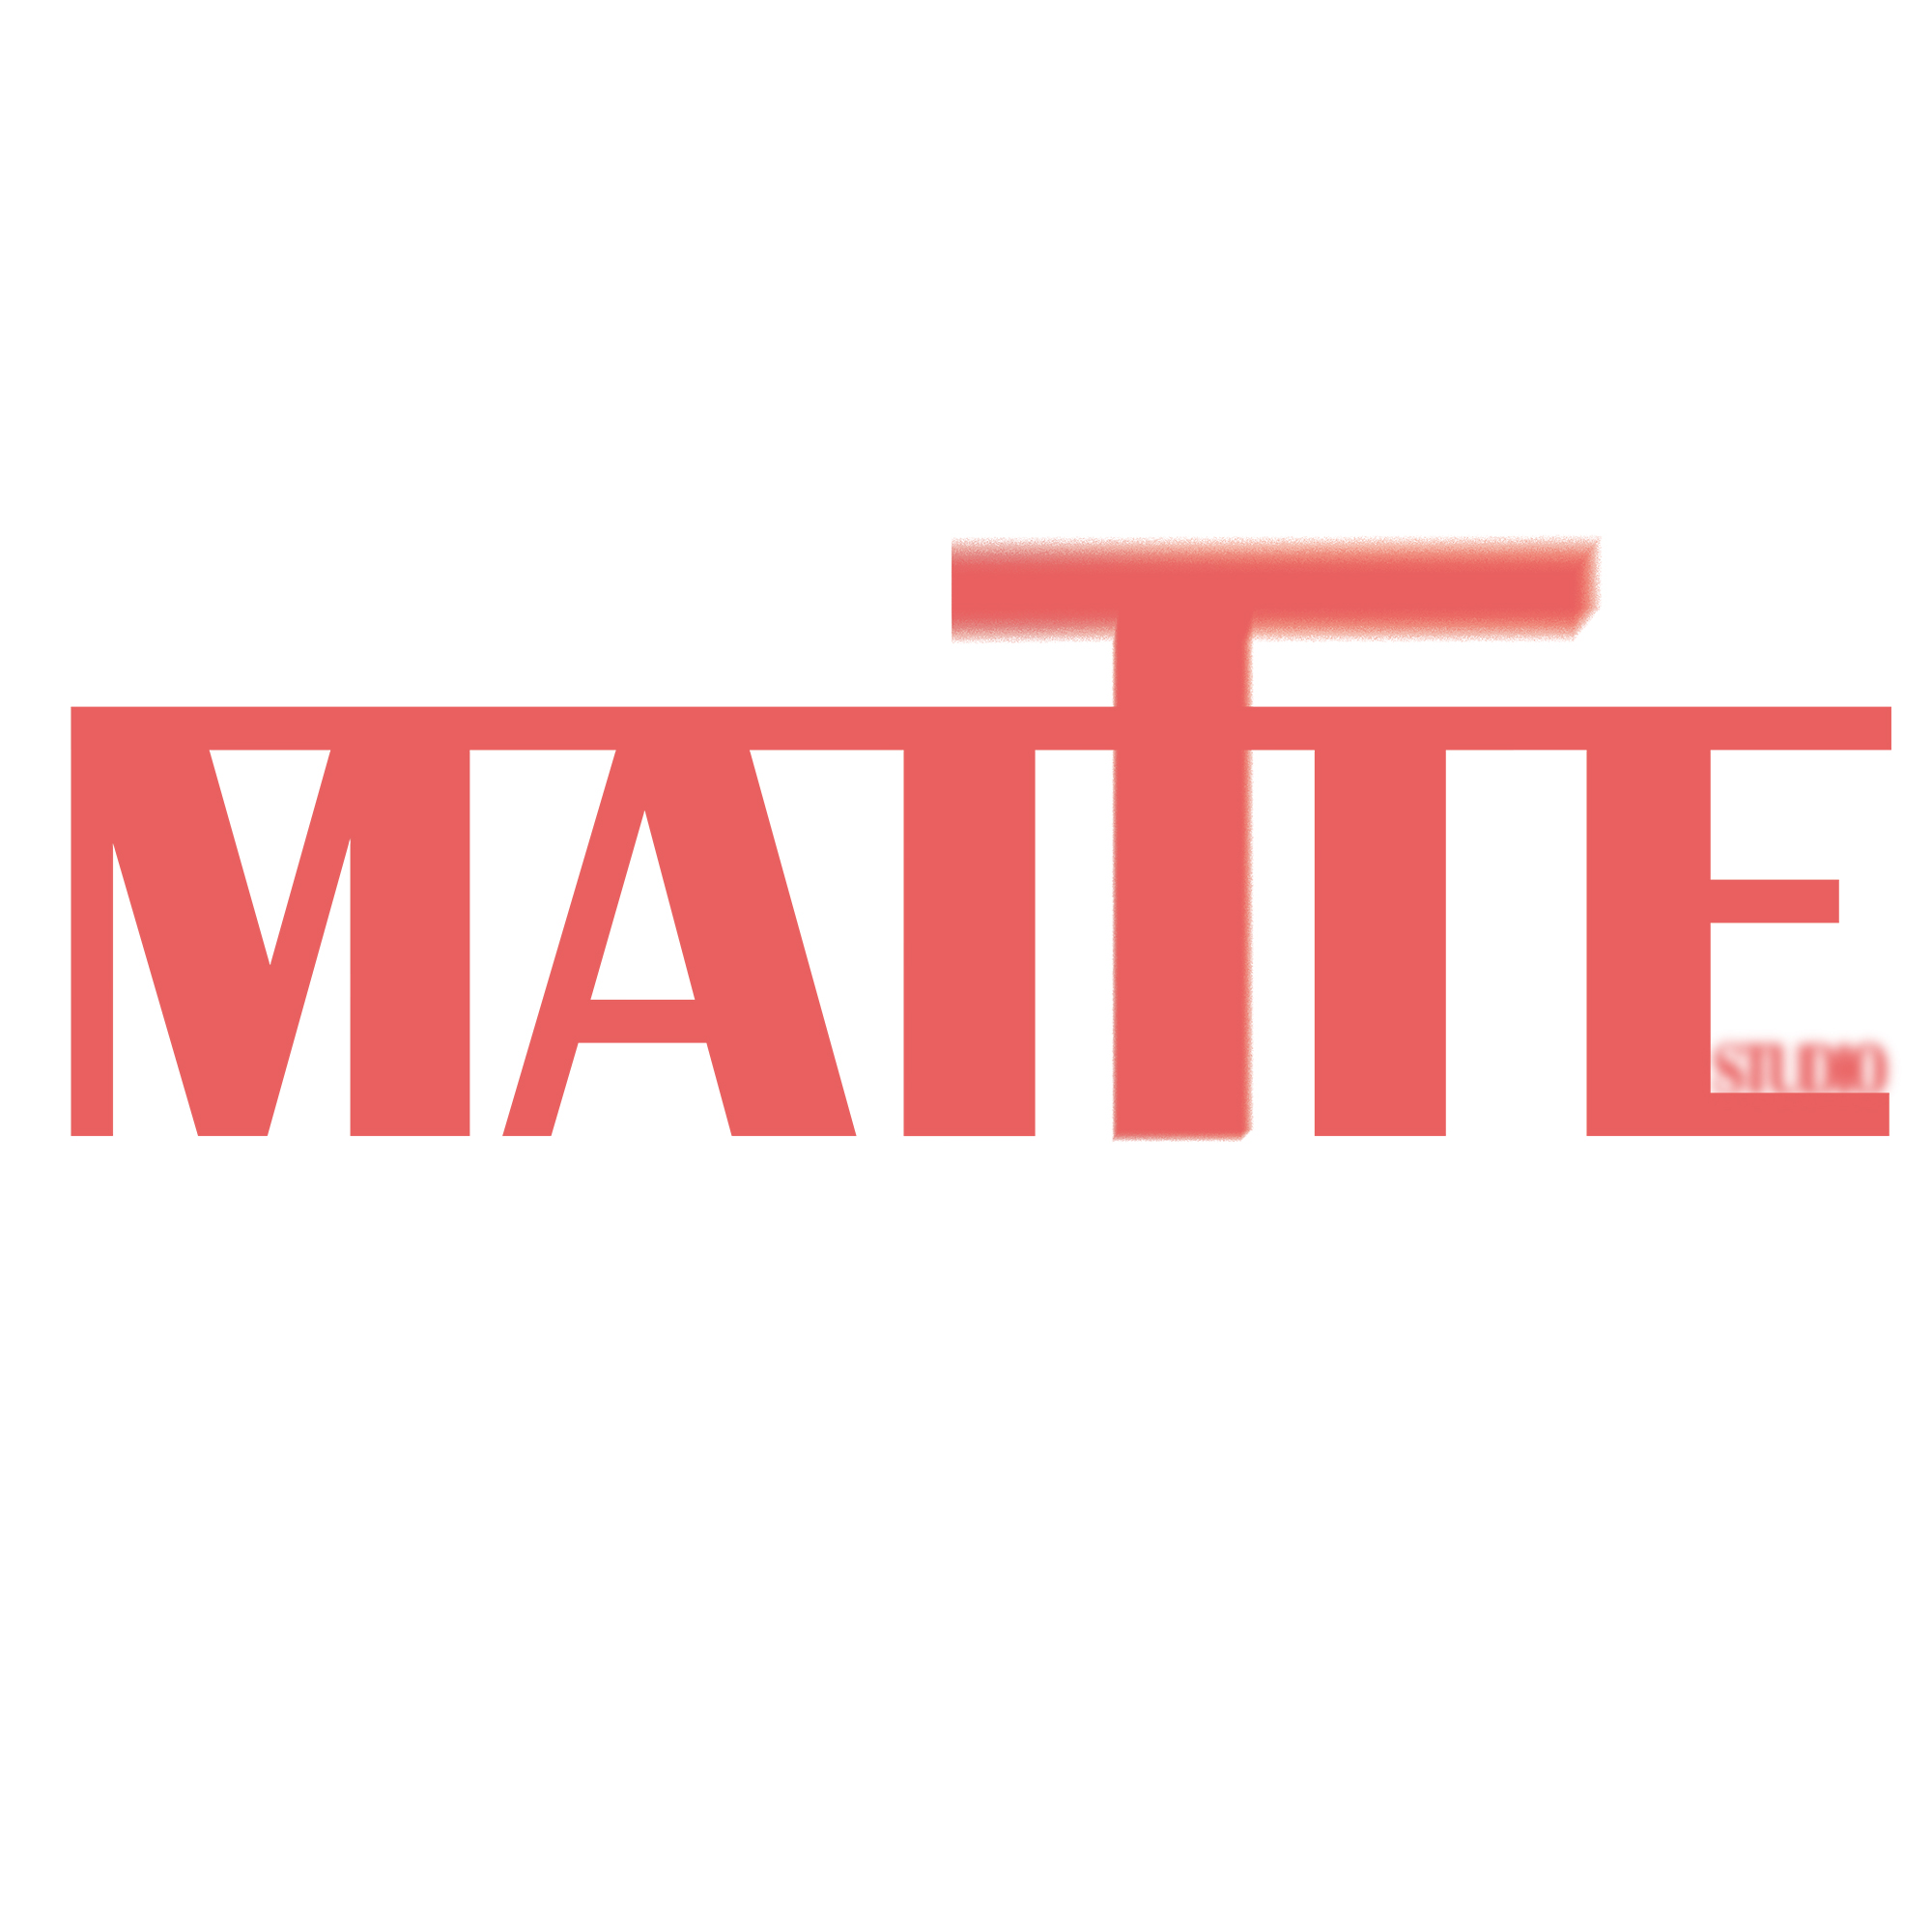 Mattte Studio's profile picture